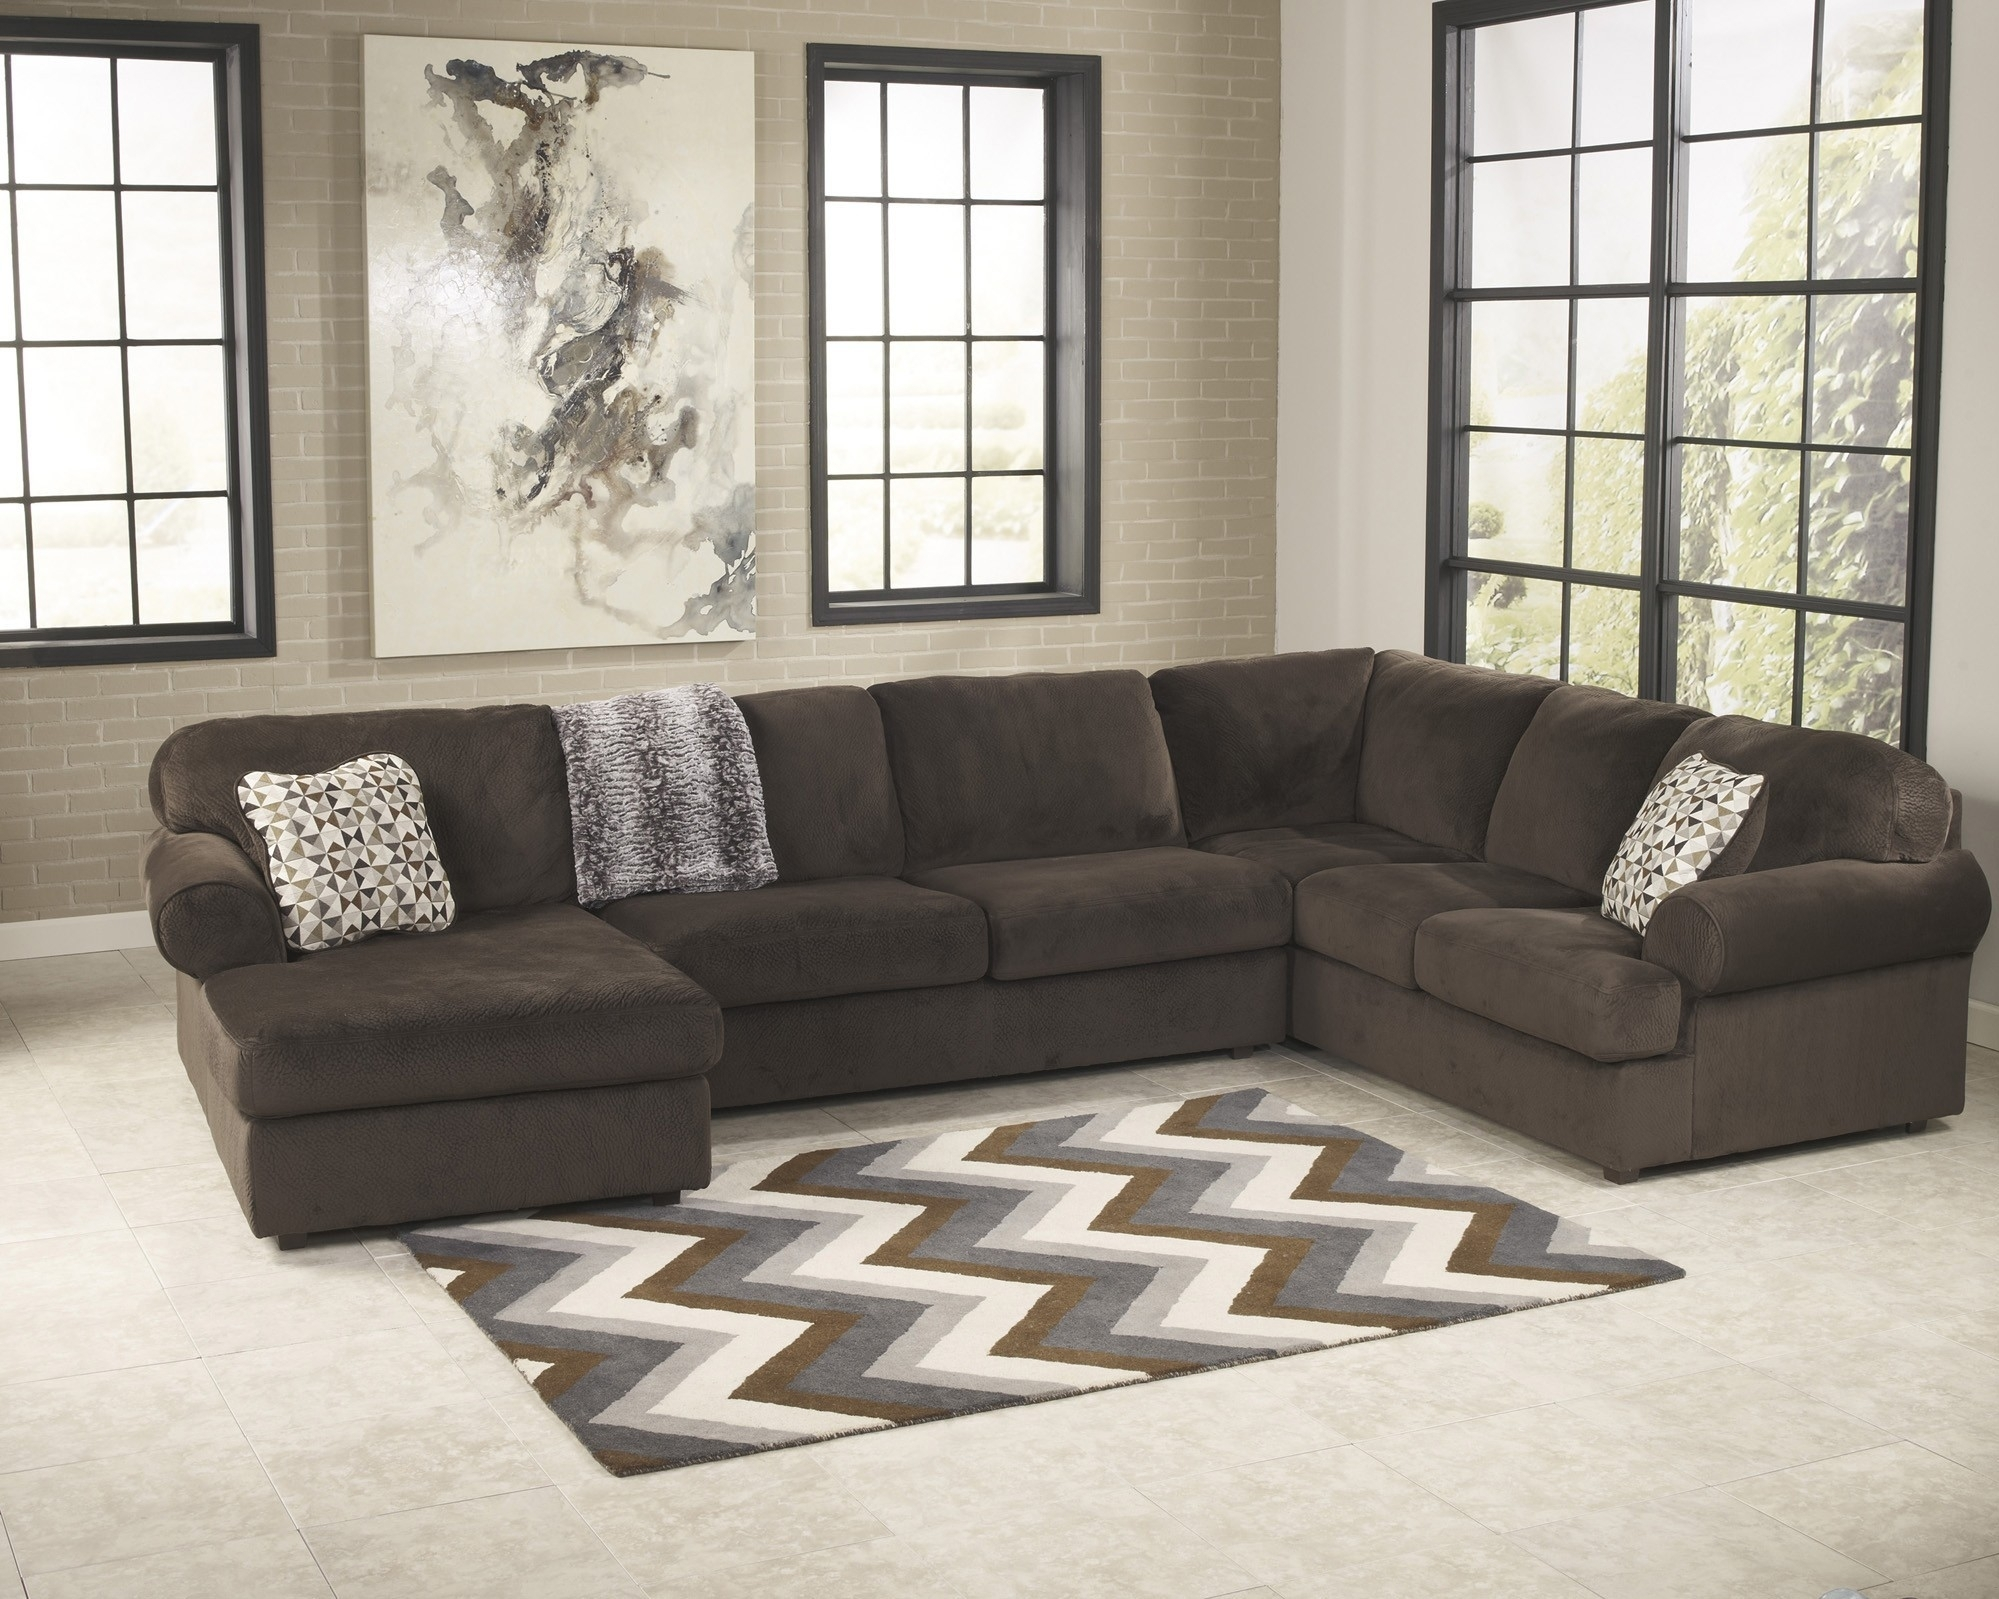 Elegant 3 Piece Sectional Sofa With Chaise - Buildsimplehome pertaining to Haven 3 Piece Sectionals (Image 11 of 32)